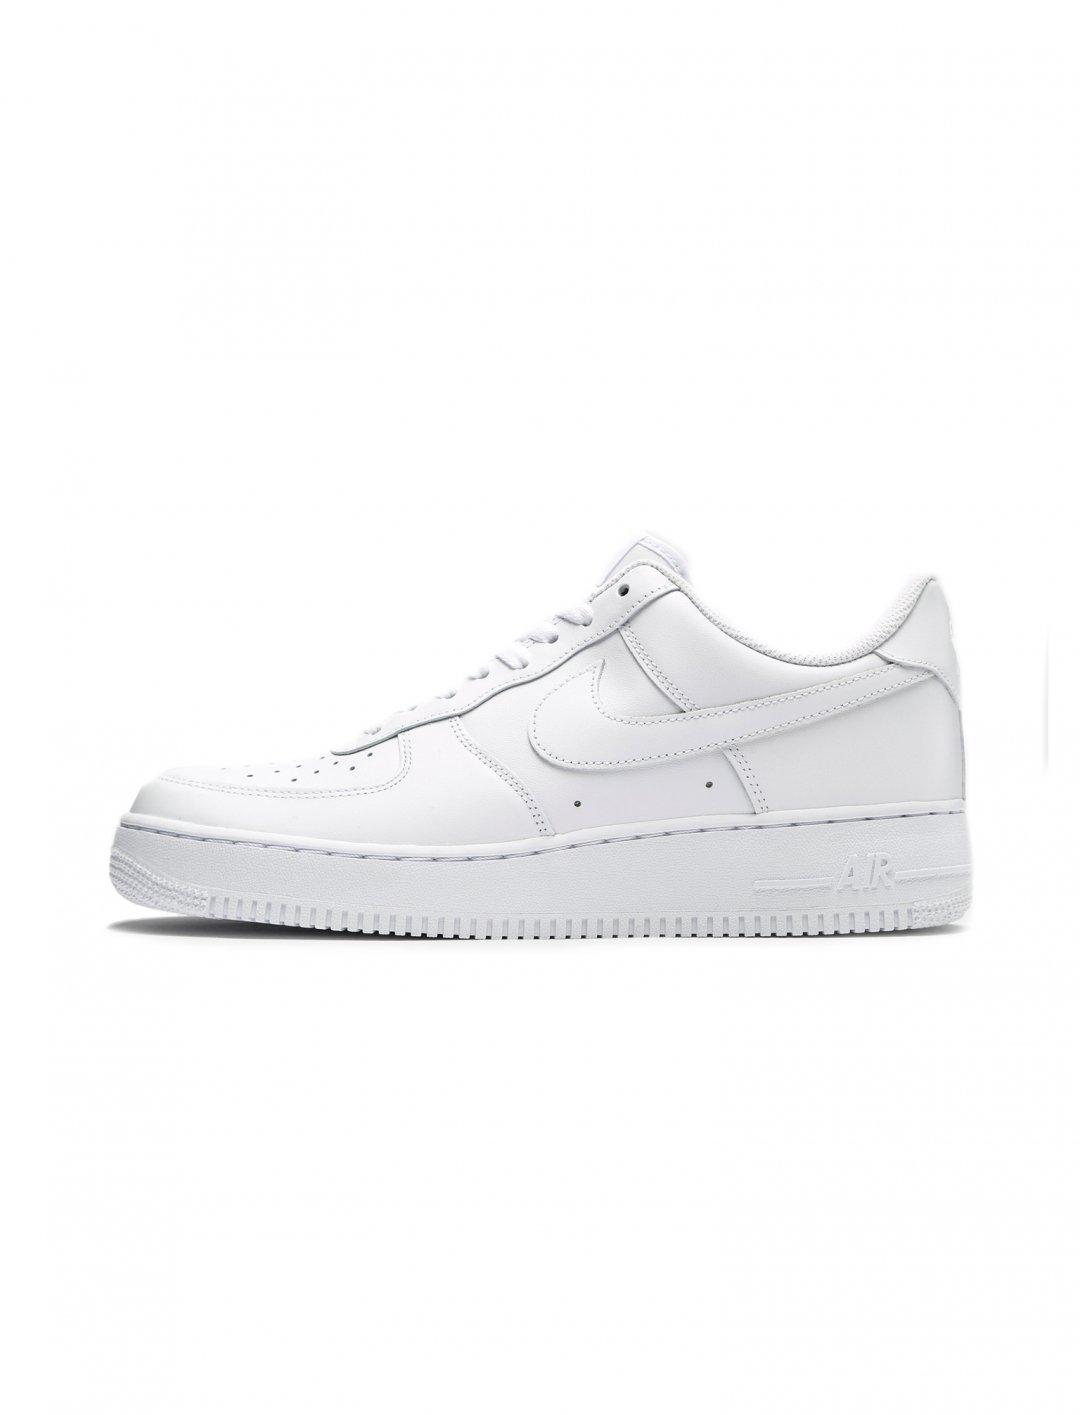 White Leather Trainerss Shoes Nike